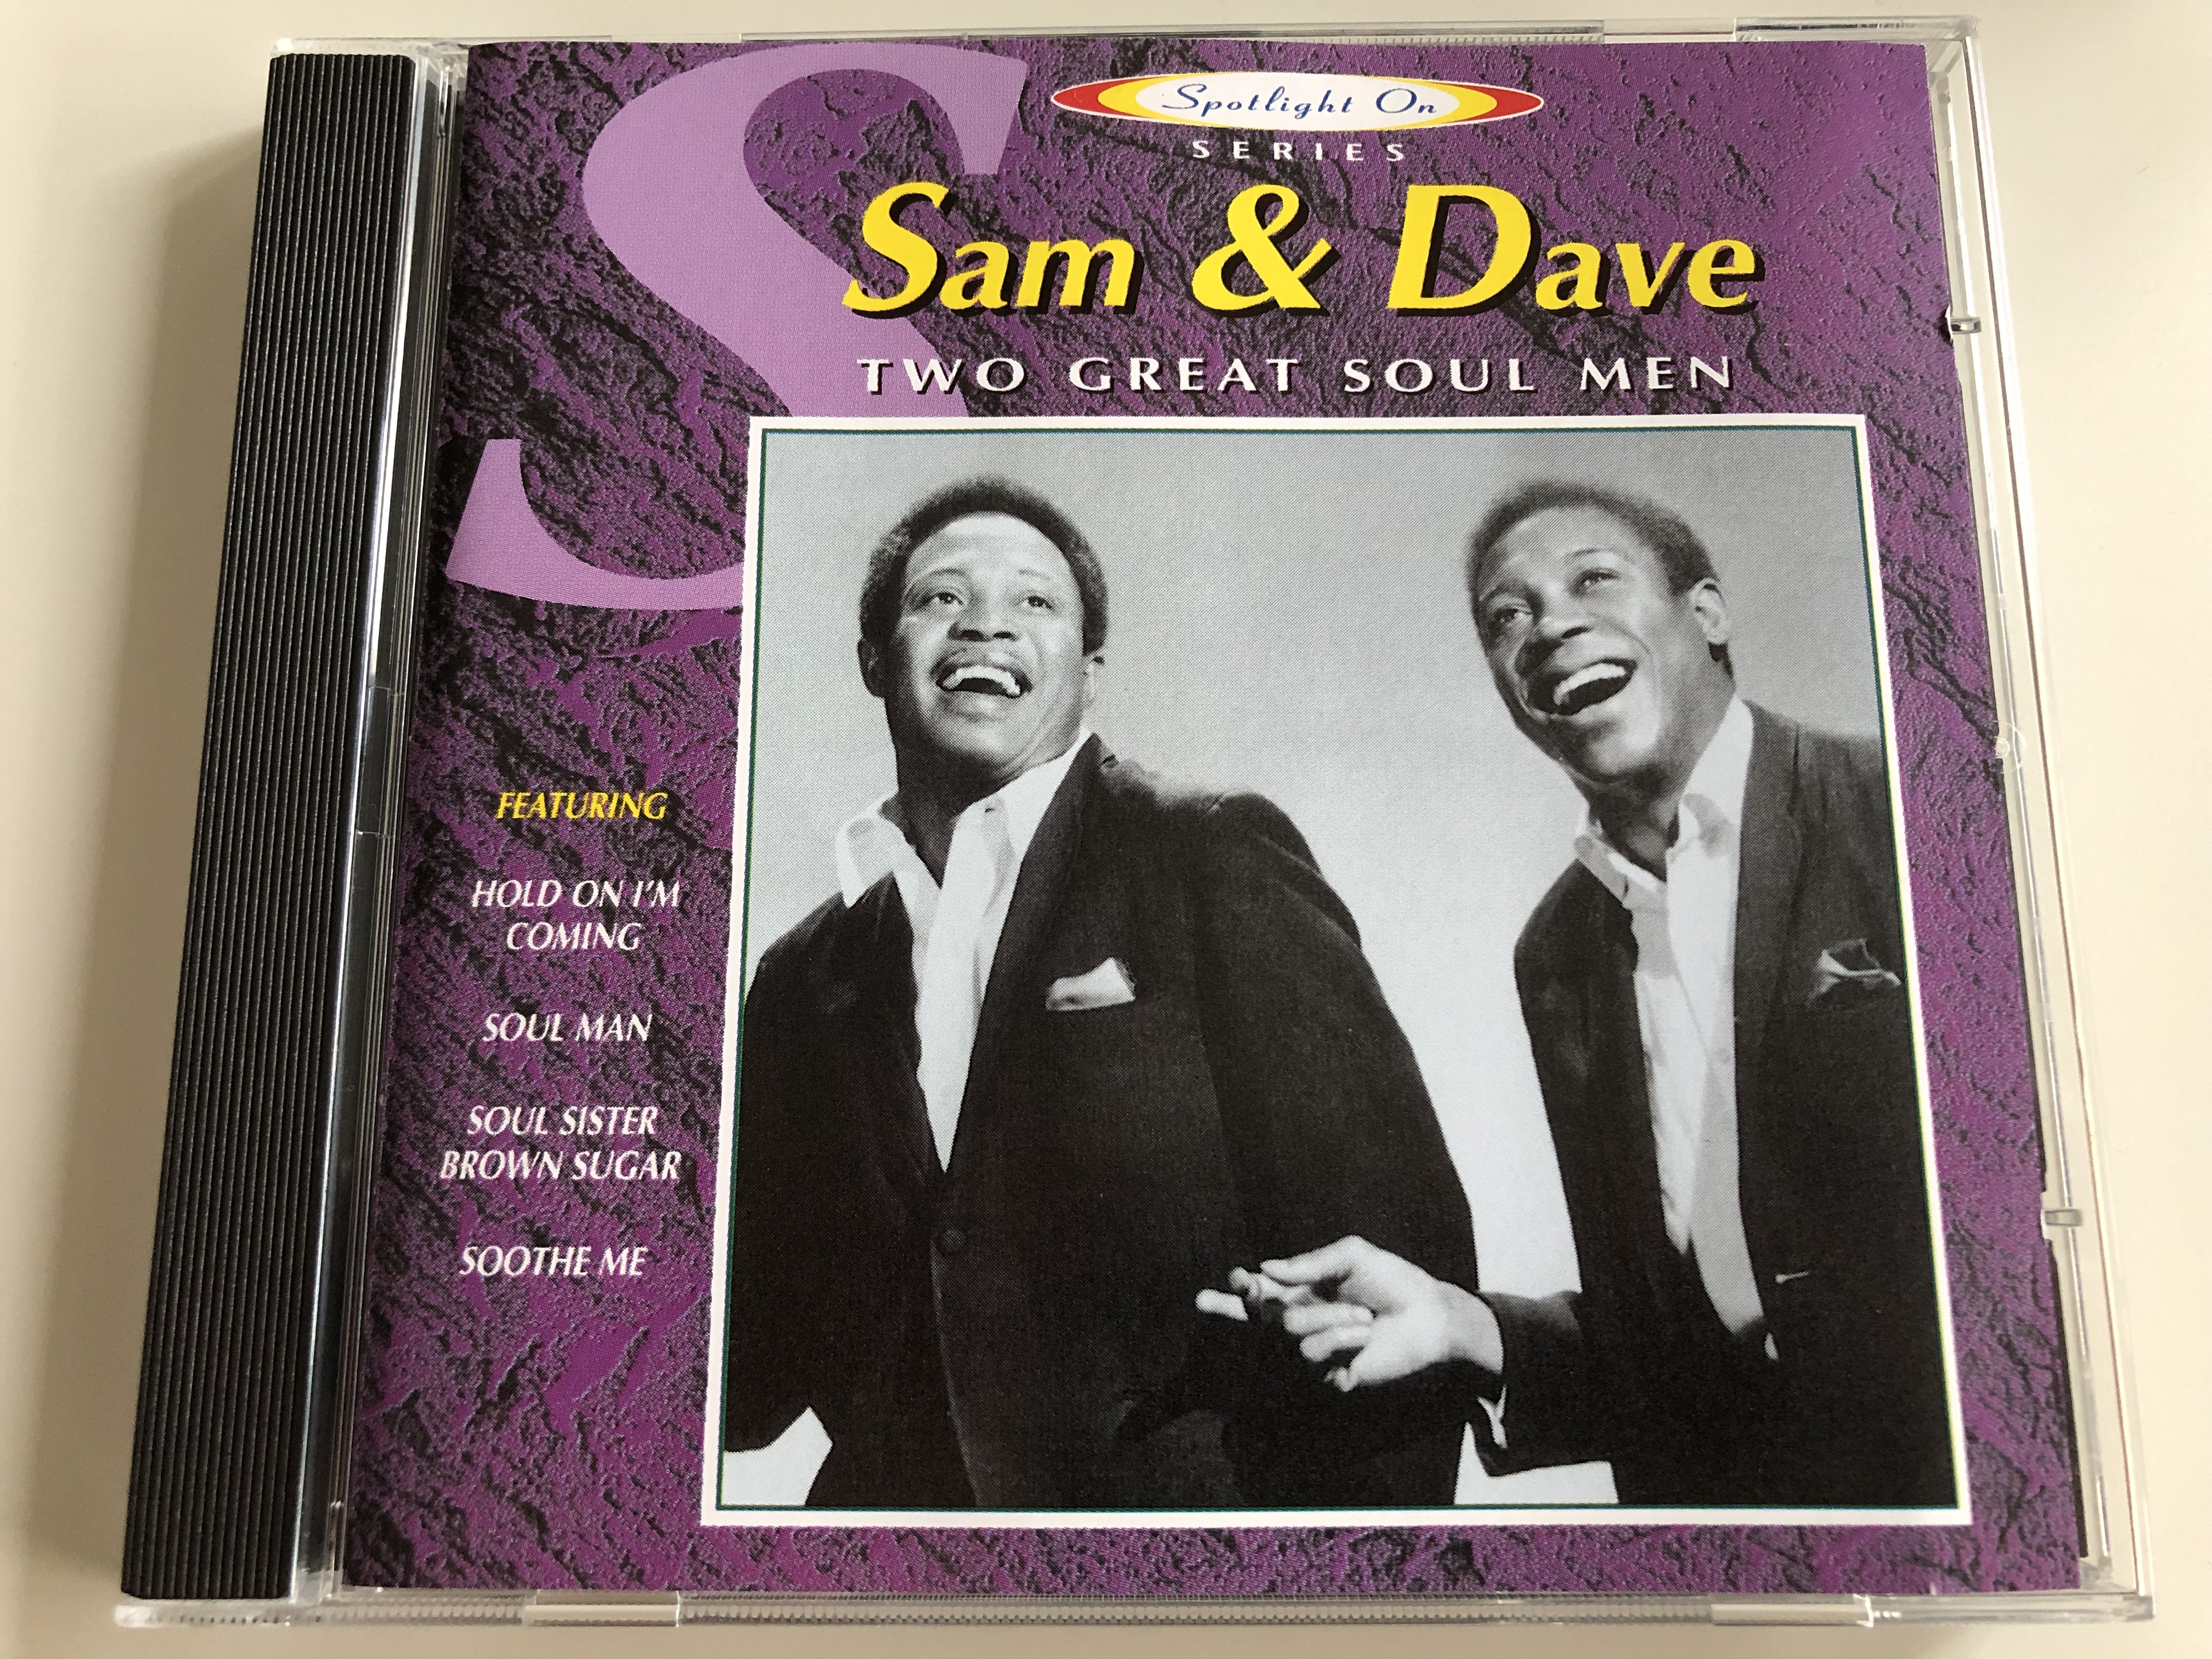 sam-dave-two-great-soul-men-featuring-hold-on-i-m-coming-soul-man-soul-sister-brown-sugar-soothe-me-javelin-audio-cd-1996-hadcd208-1-.jpg